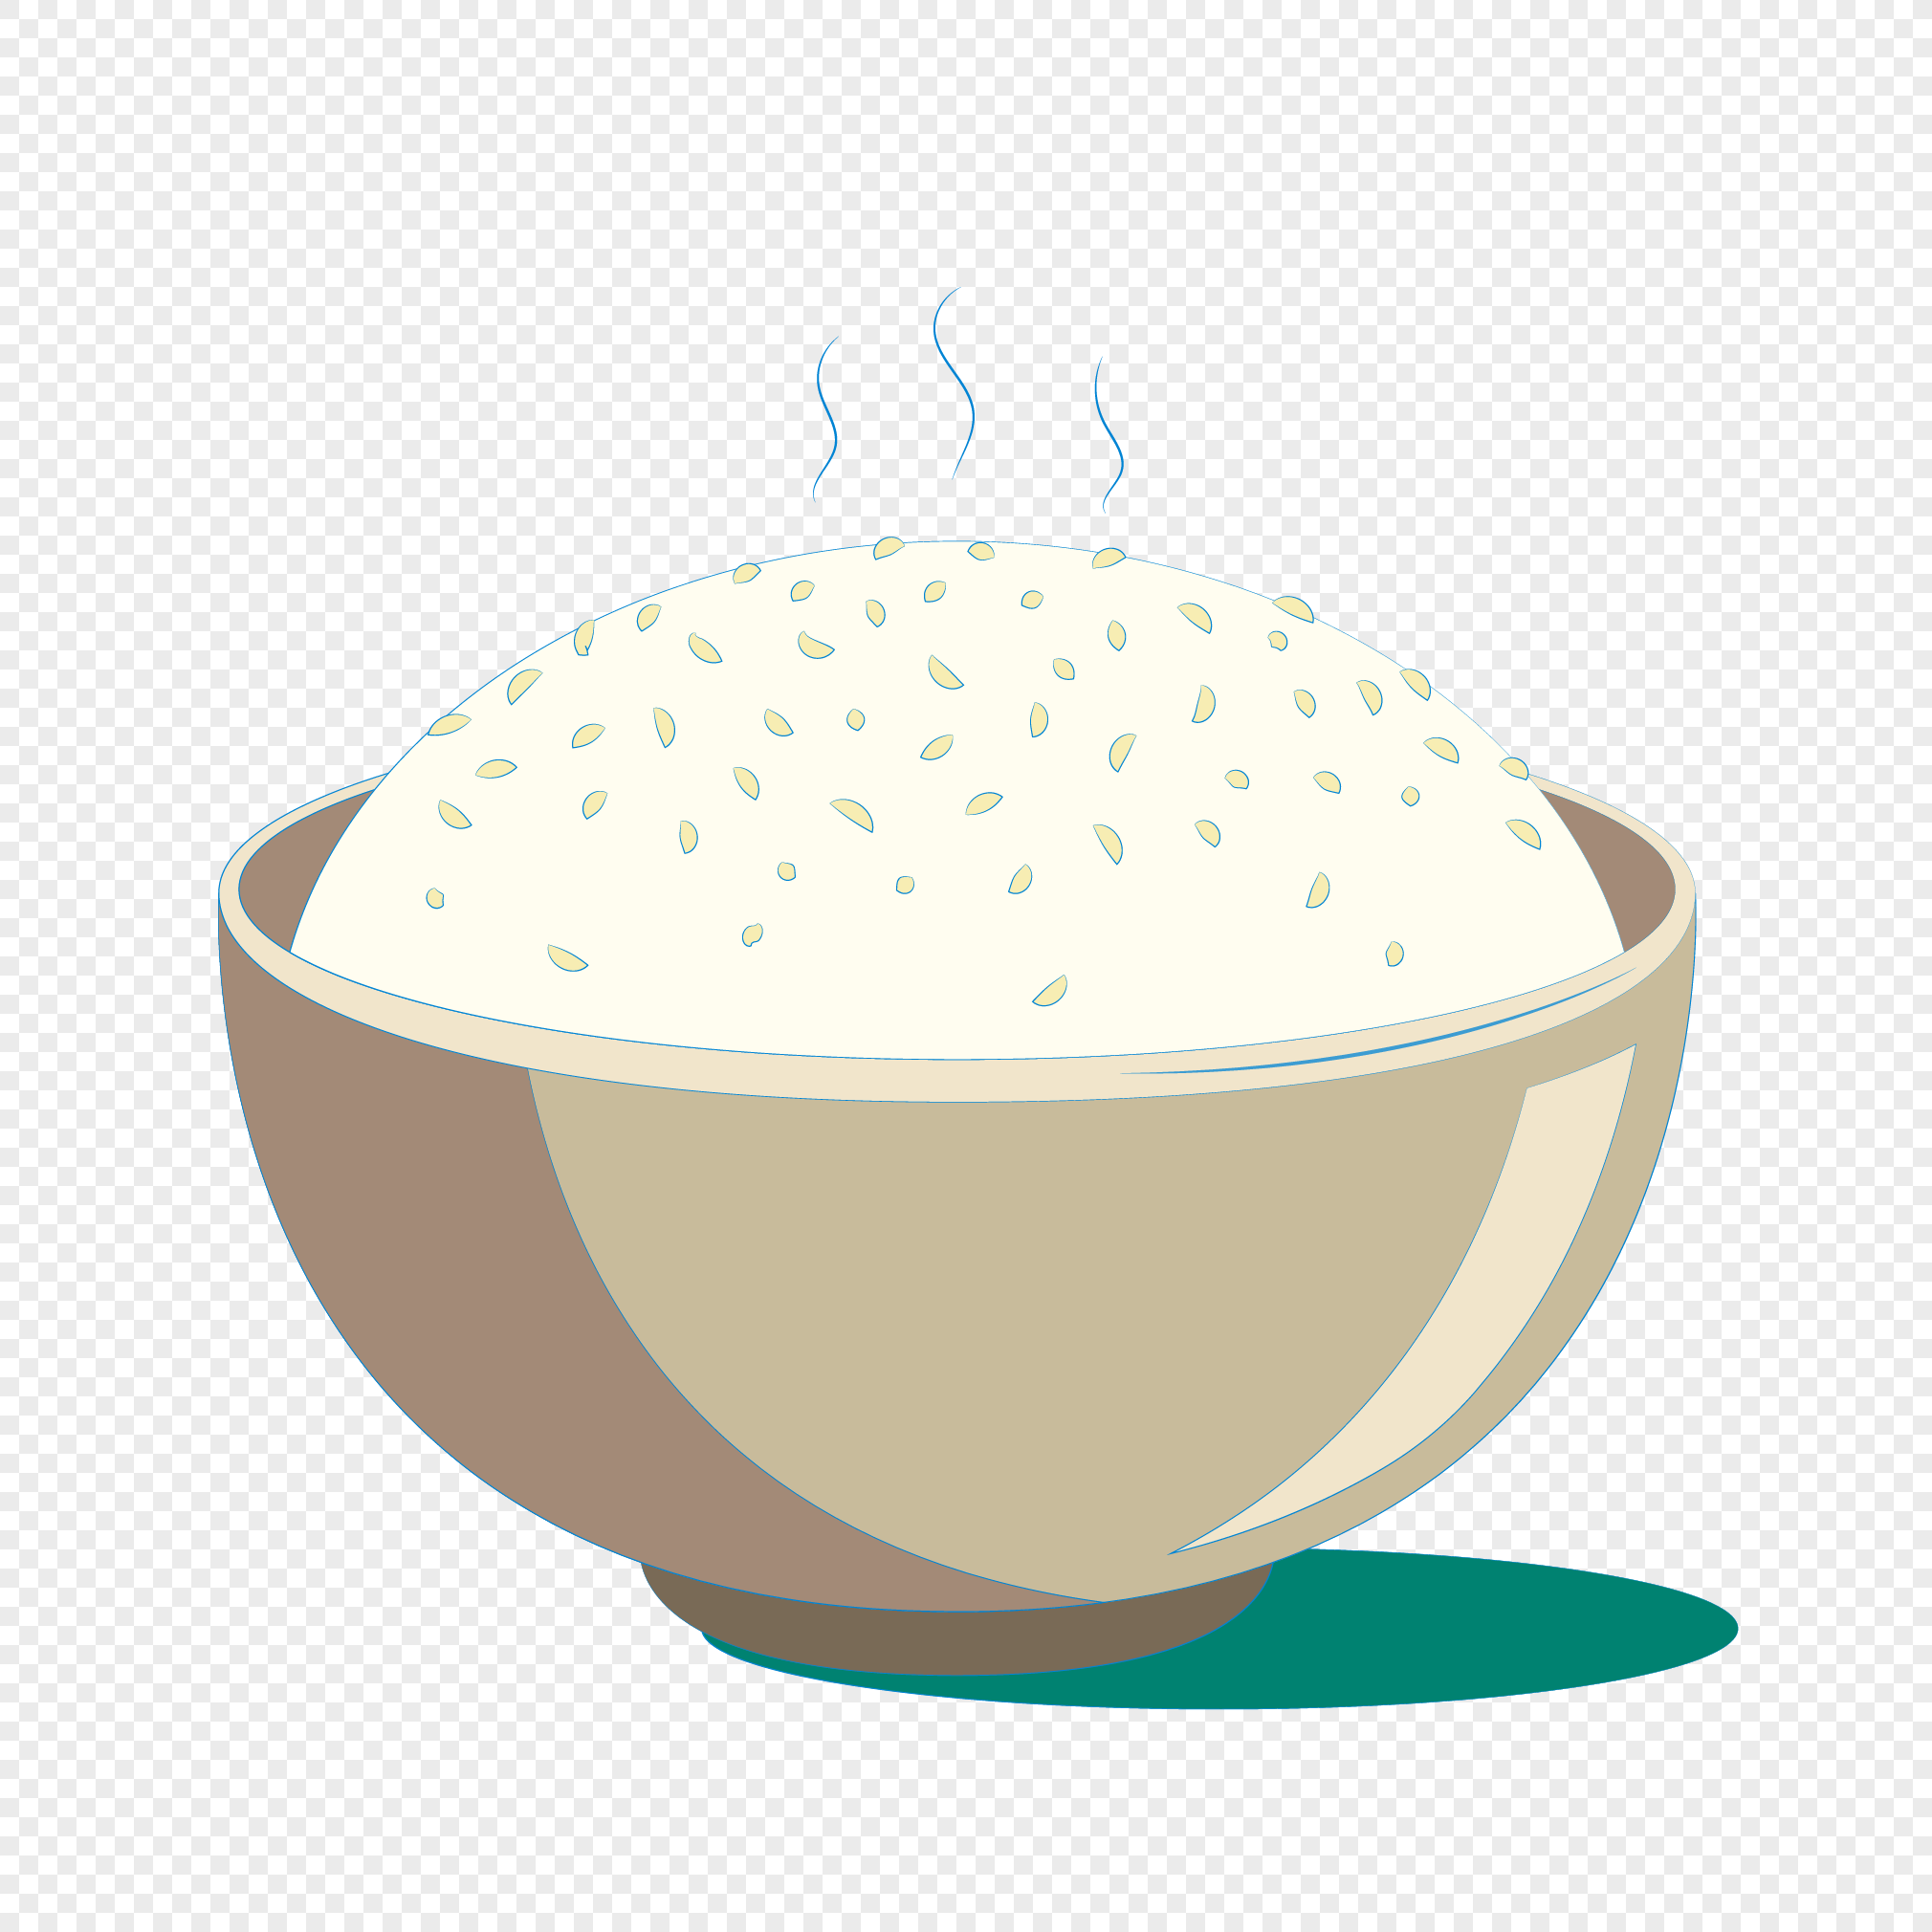 2020x2020 Rice Vector Png Image Picture Free Download 400296448